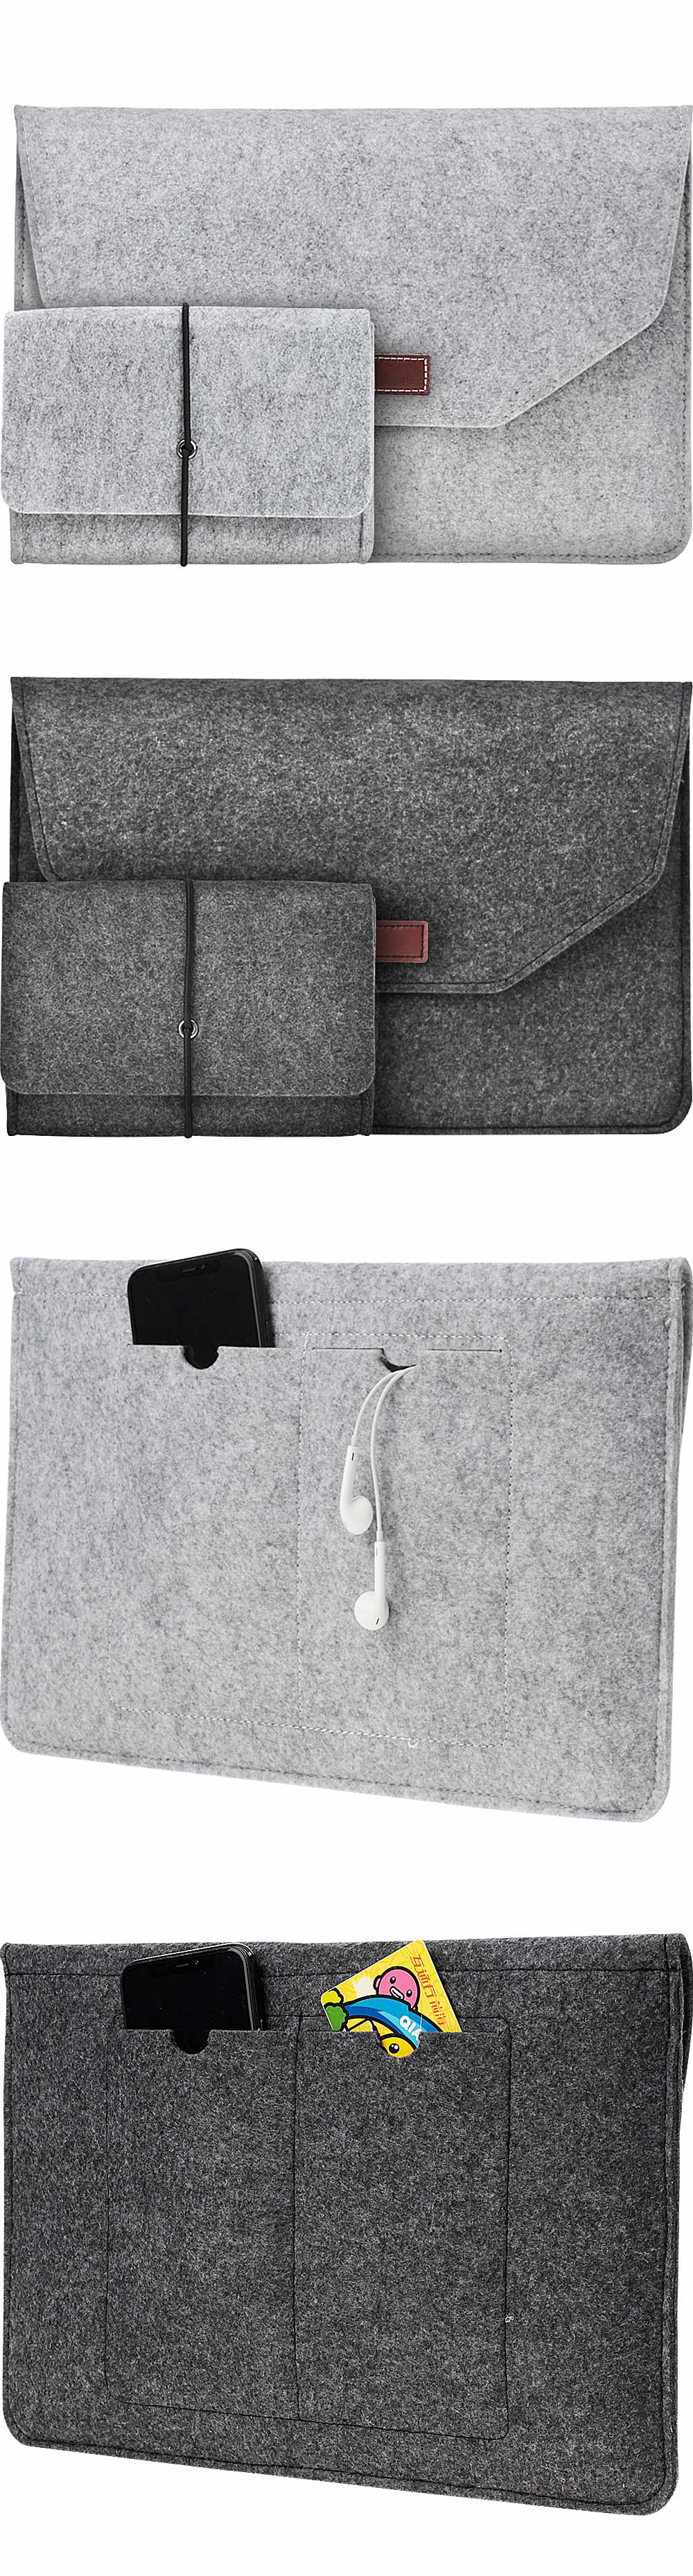 Soft For Macbook Air 13 Retina 13 Laptop Sleeve Wool Flet Case For Macbook Retina Pro 12 13 15 Touch Bar Laptop Case Mouse Bag  (1)